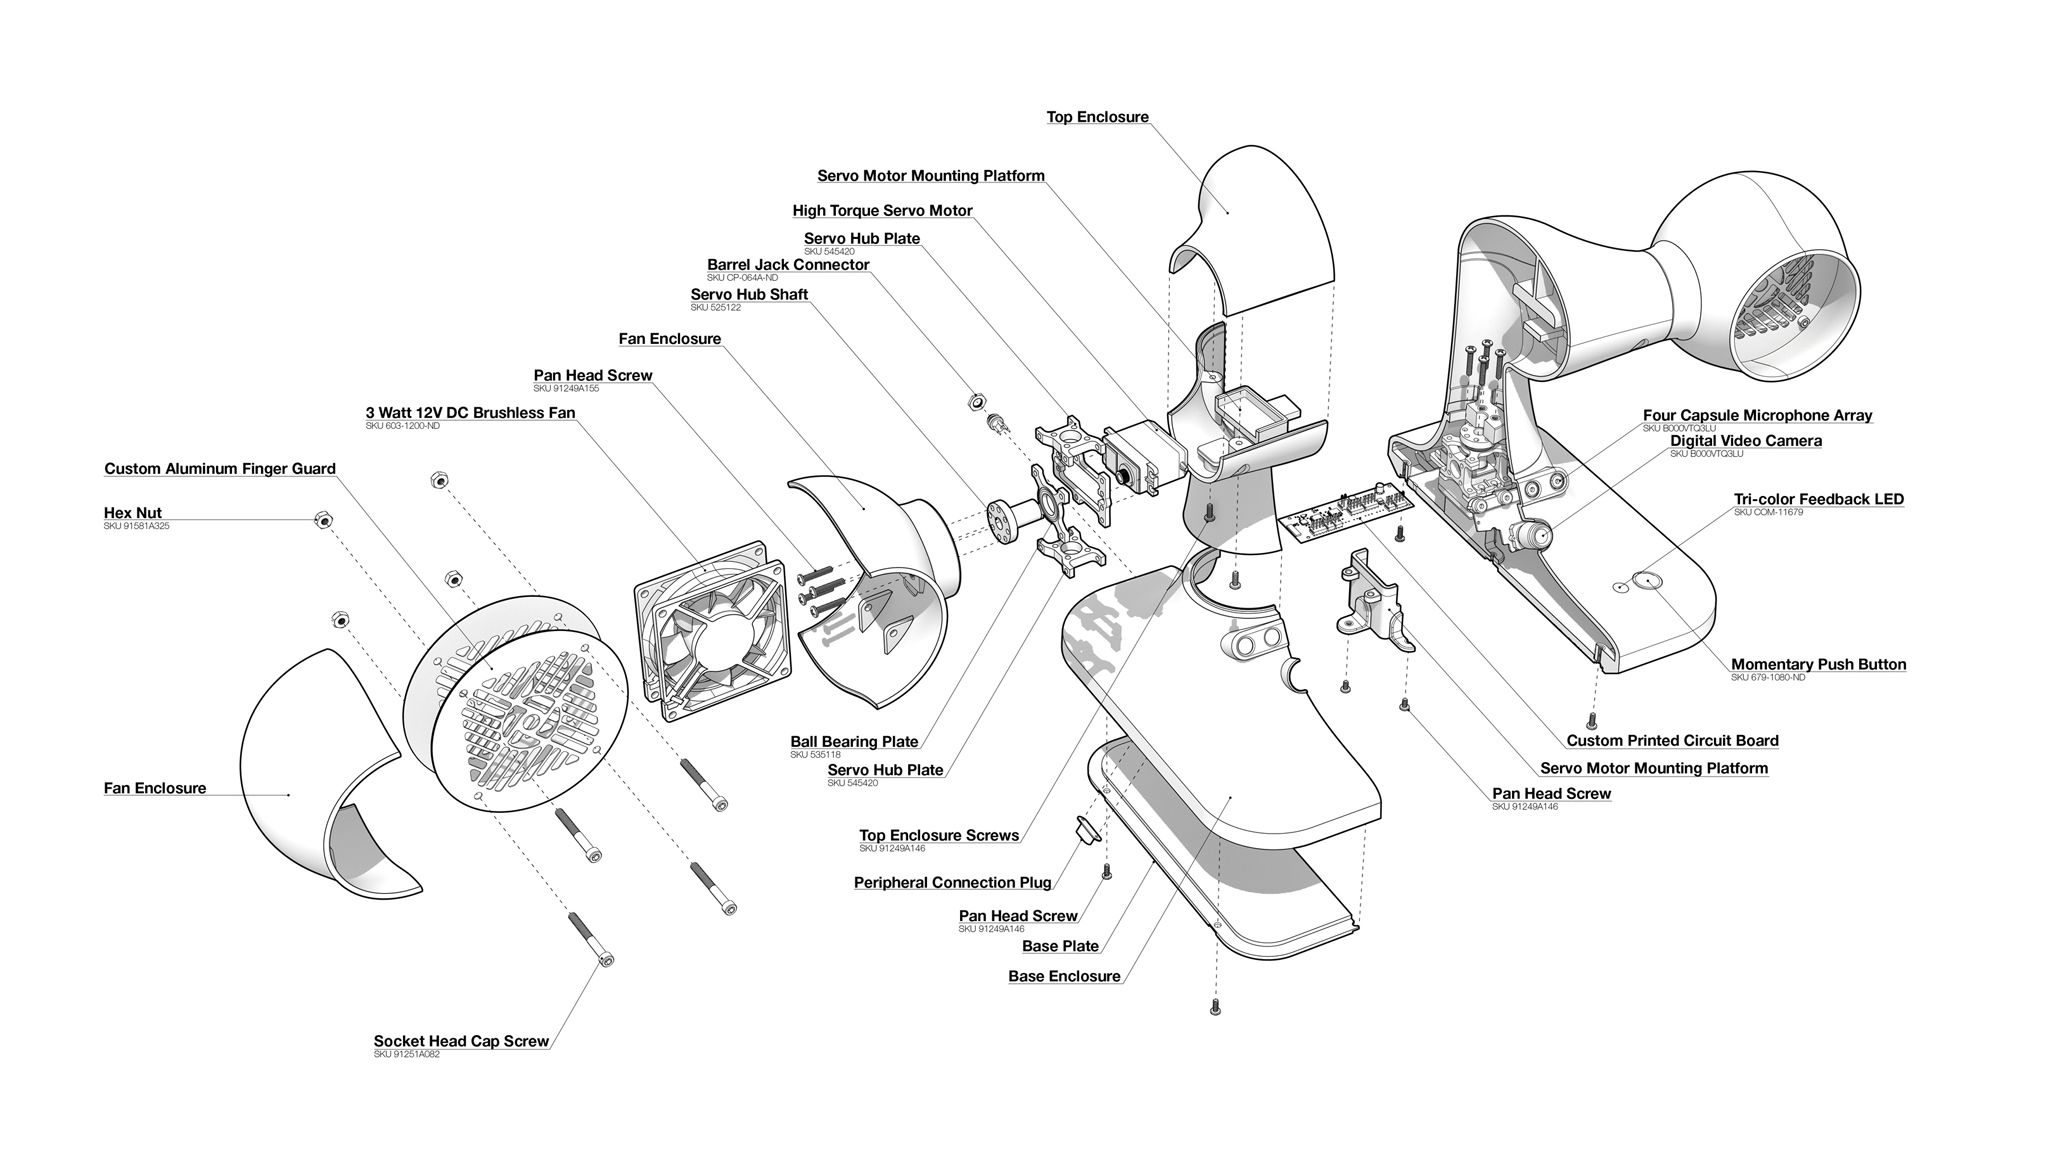 An Exploded Axon Drawing Of The Smart Fan